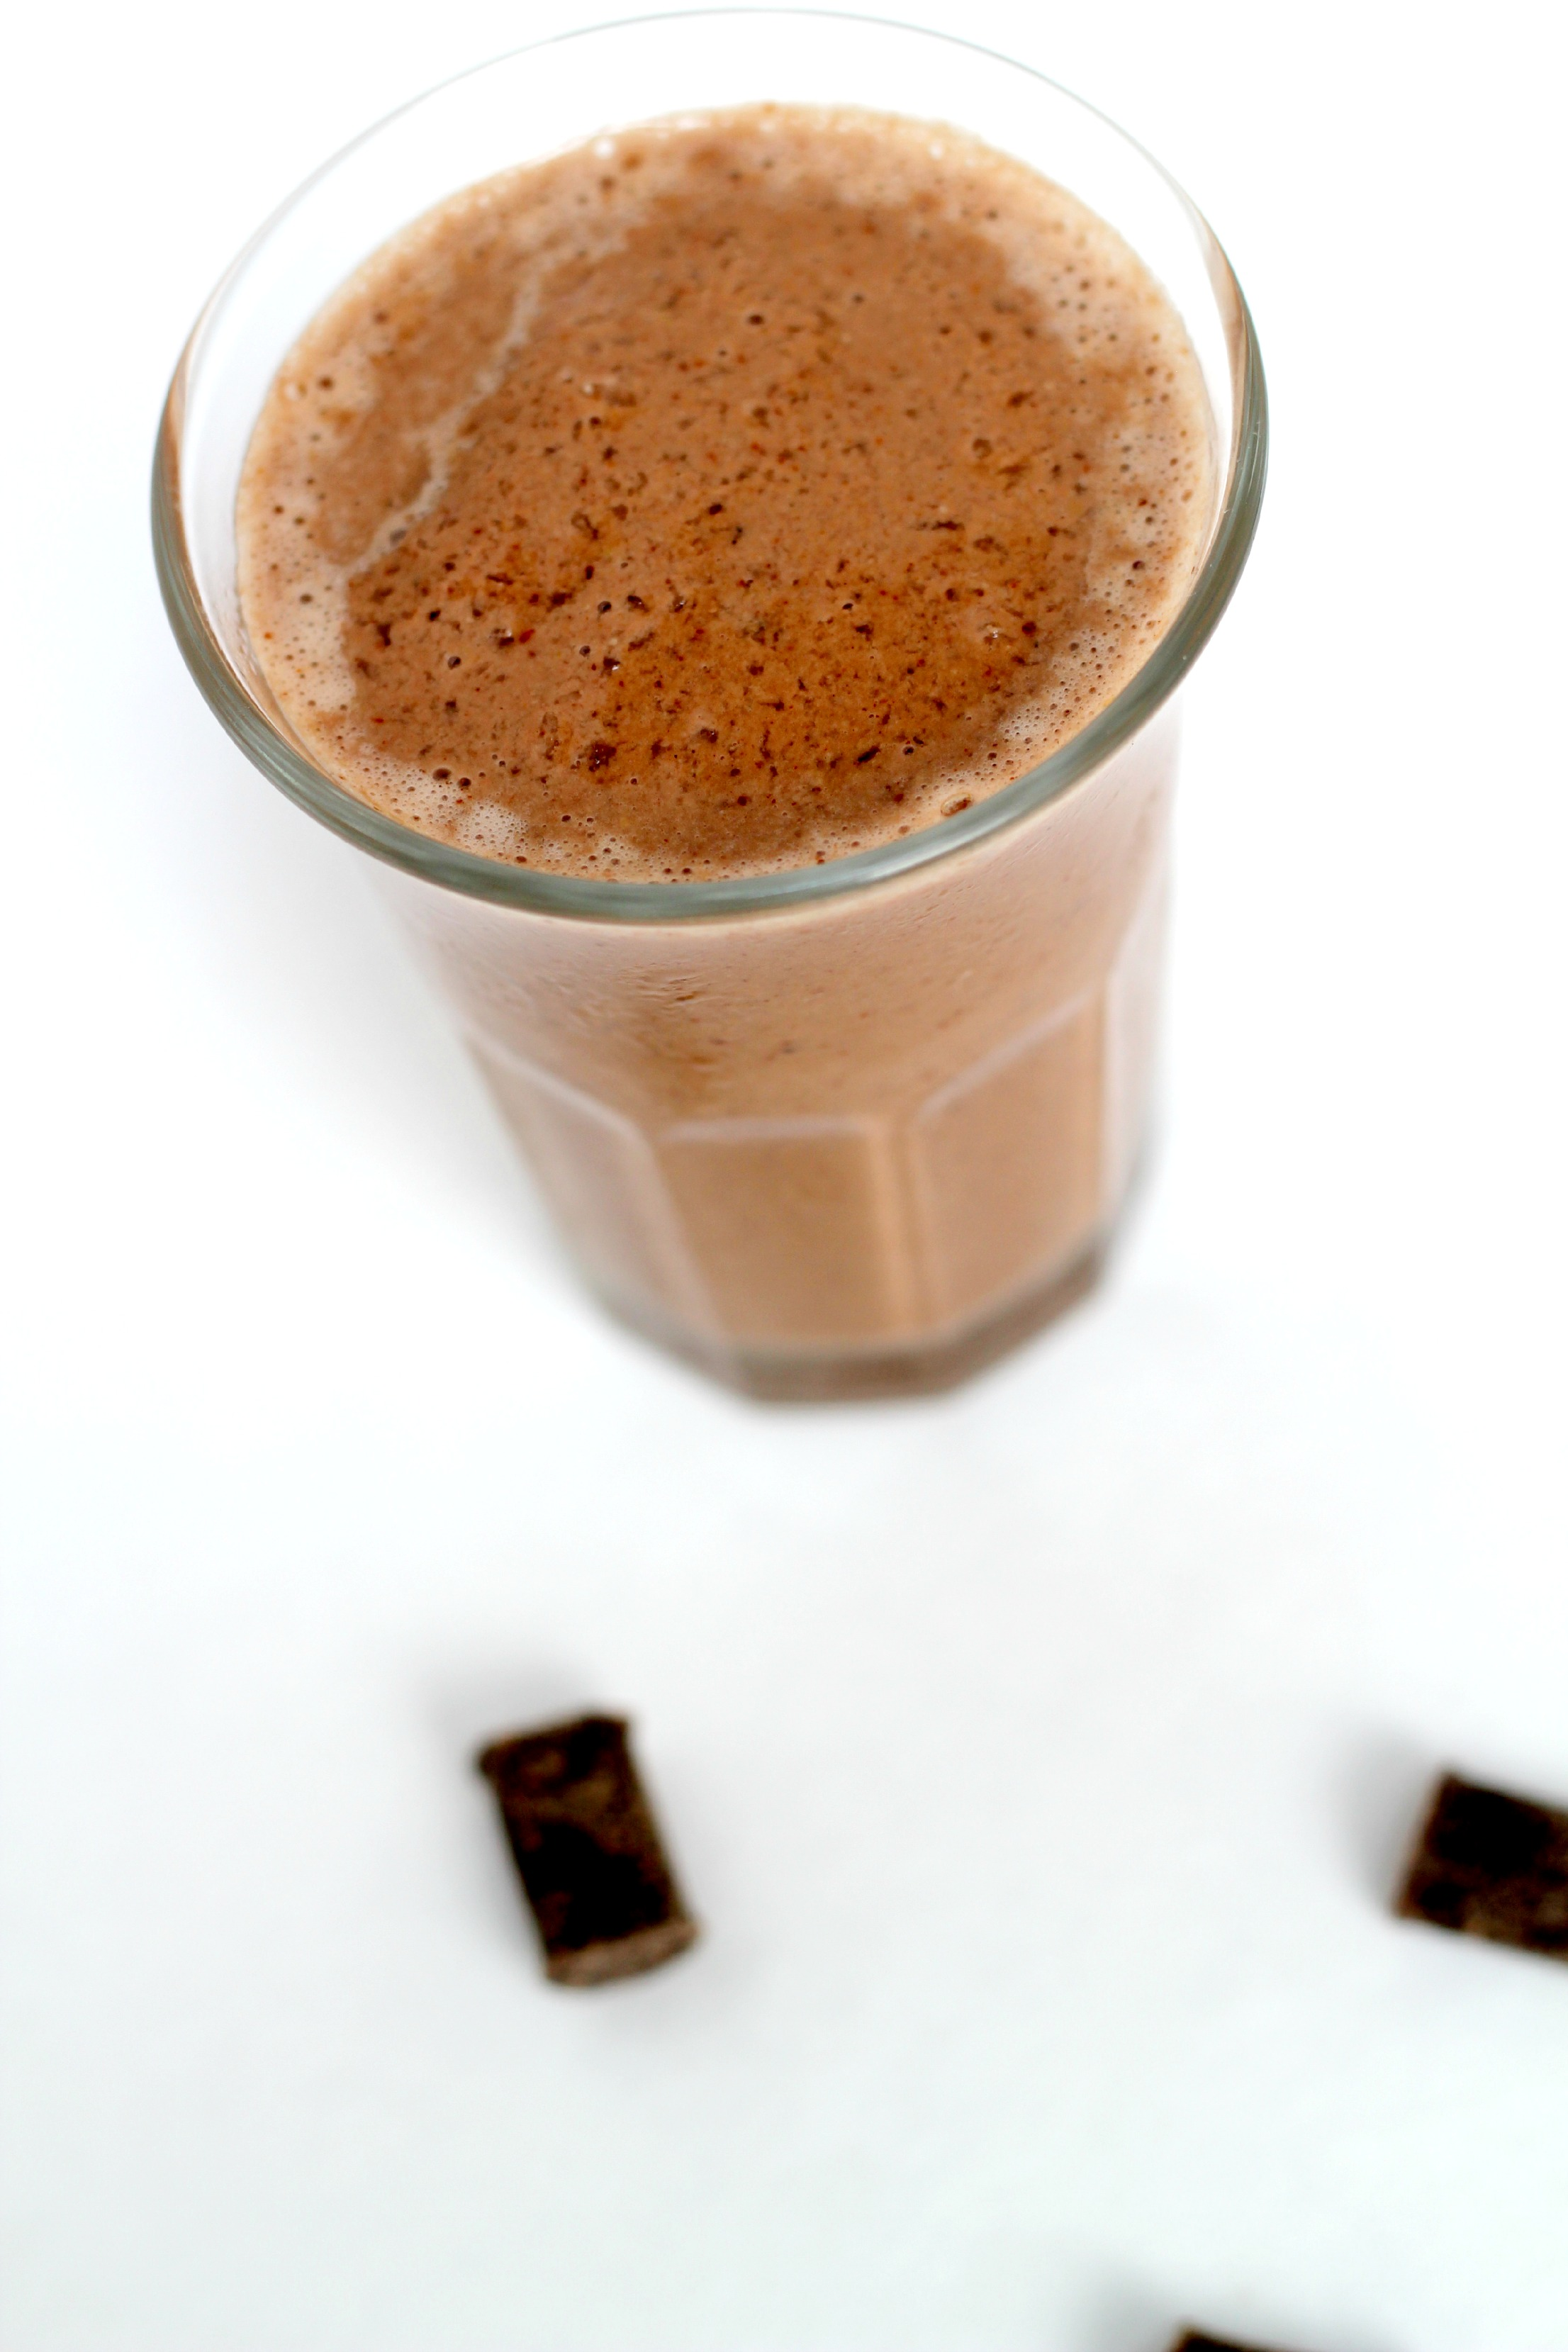 This Paleo Chocolate Smoothie is so good, you will want it for dessert.